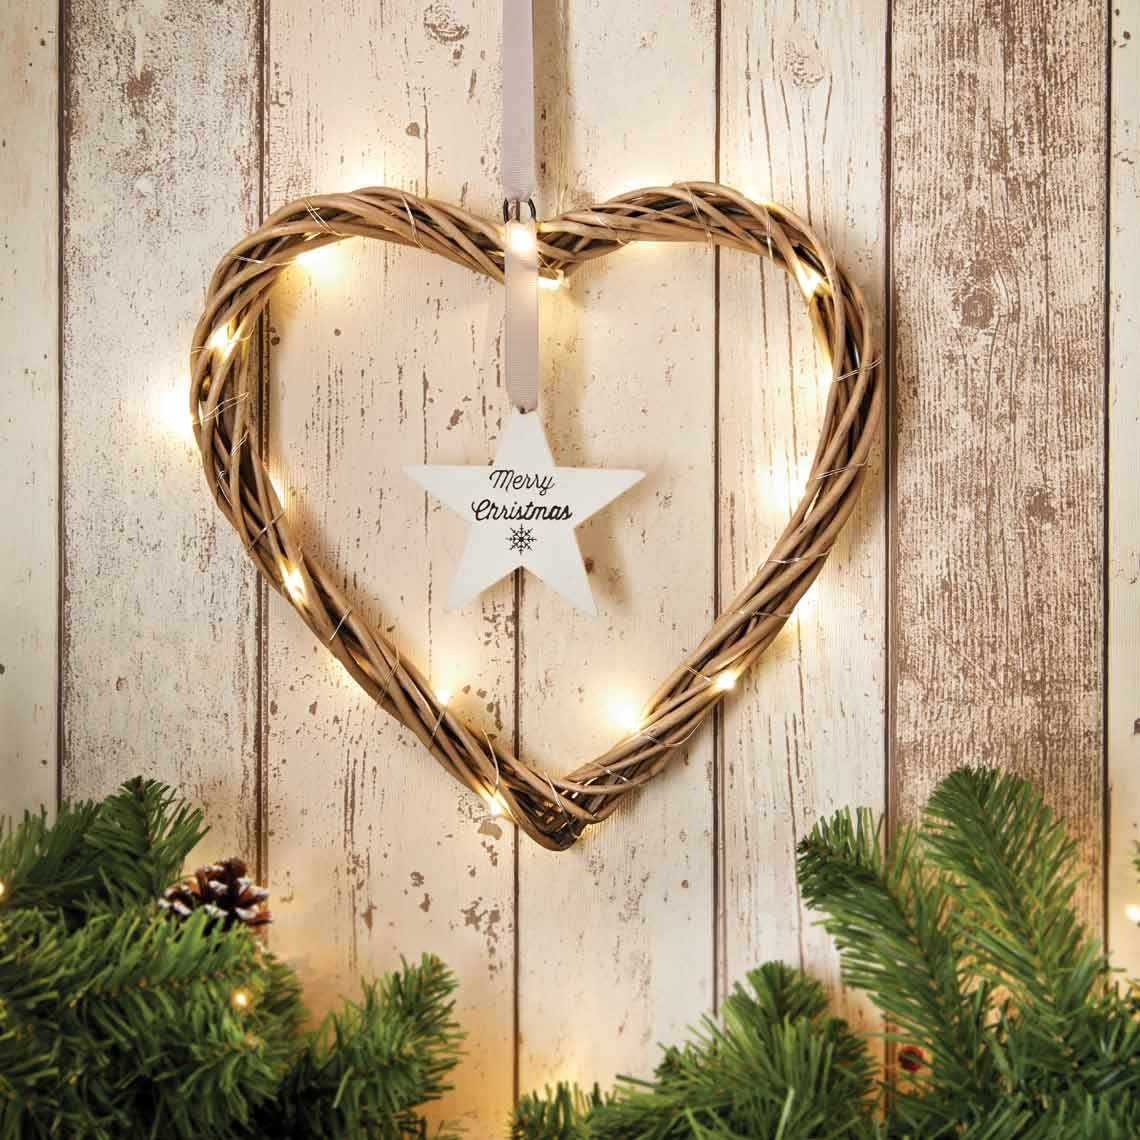 Dunnes Store Christmas Decorations: GAFF's Top 10: Christmas Lights You Need This Season